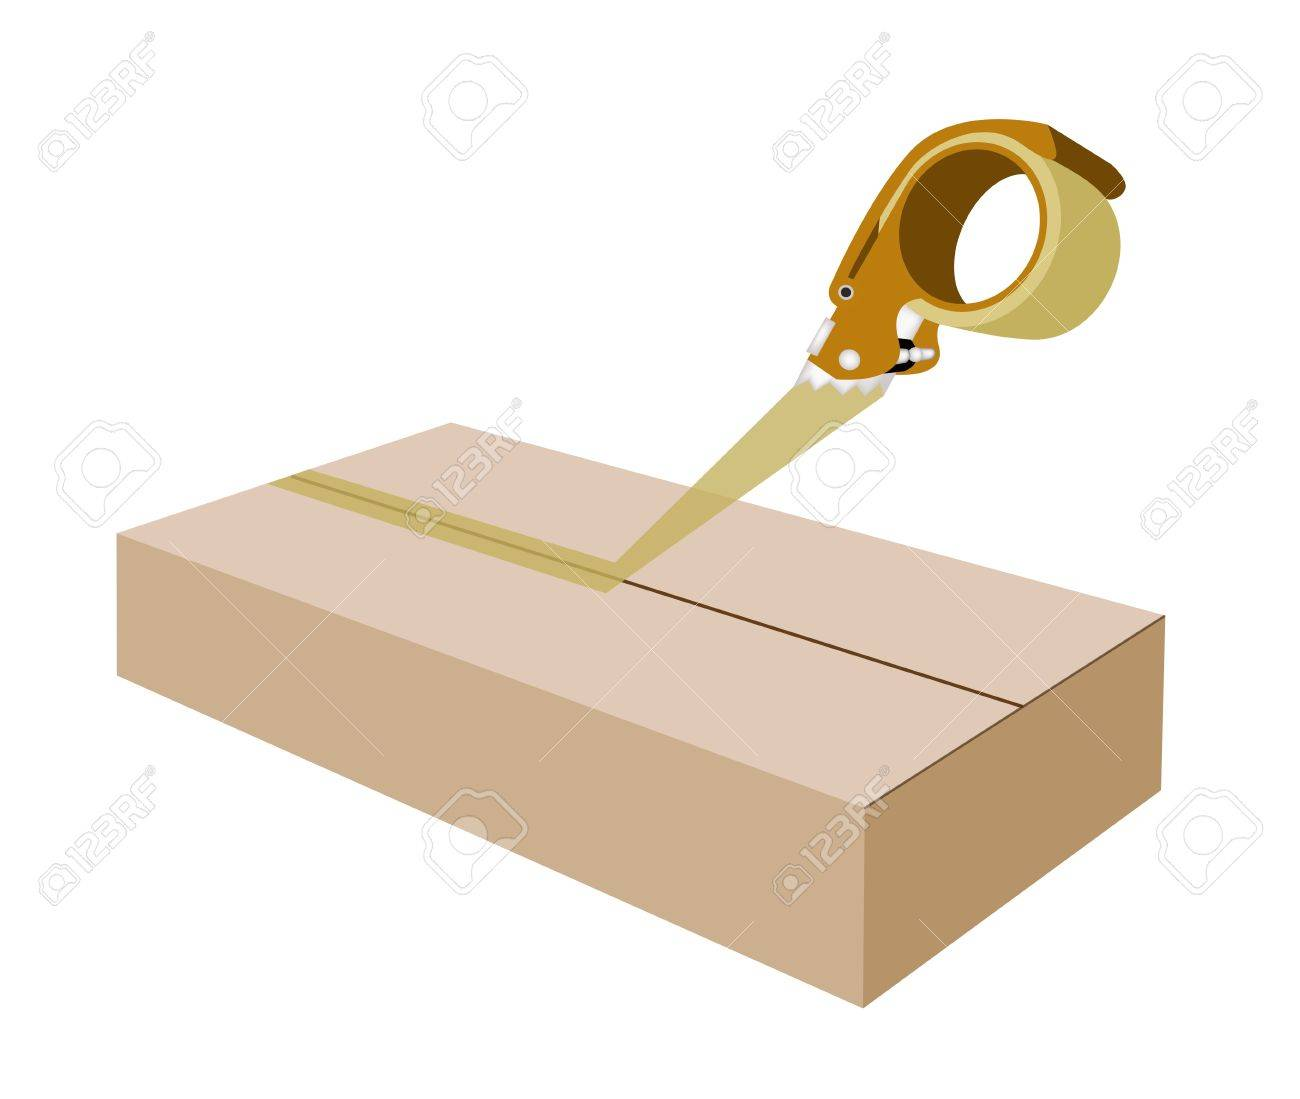 Orange Packing Tape Dispenser or Adhesive Tape Dispenser Closing A Brown Cardboard Box Isolated on White Background. Stock Vector - 23565468